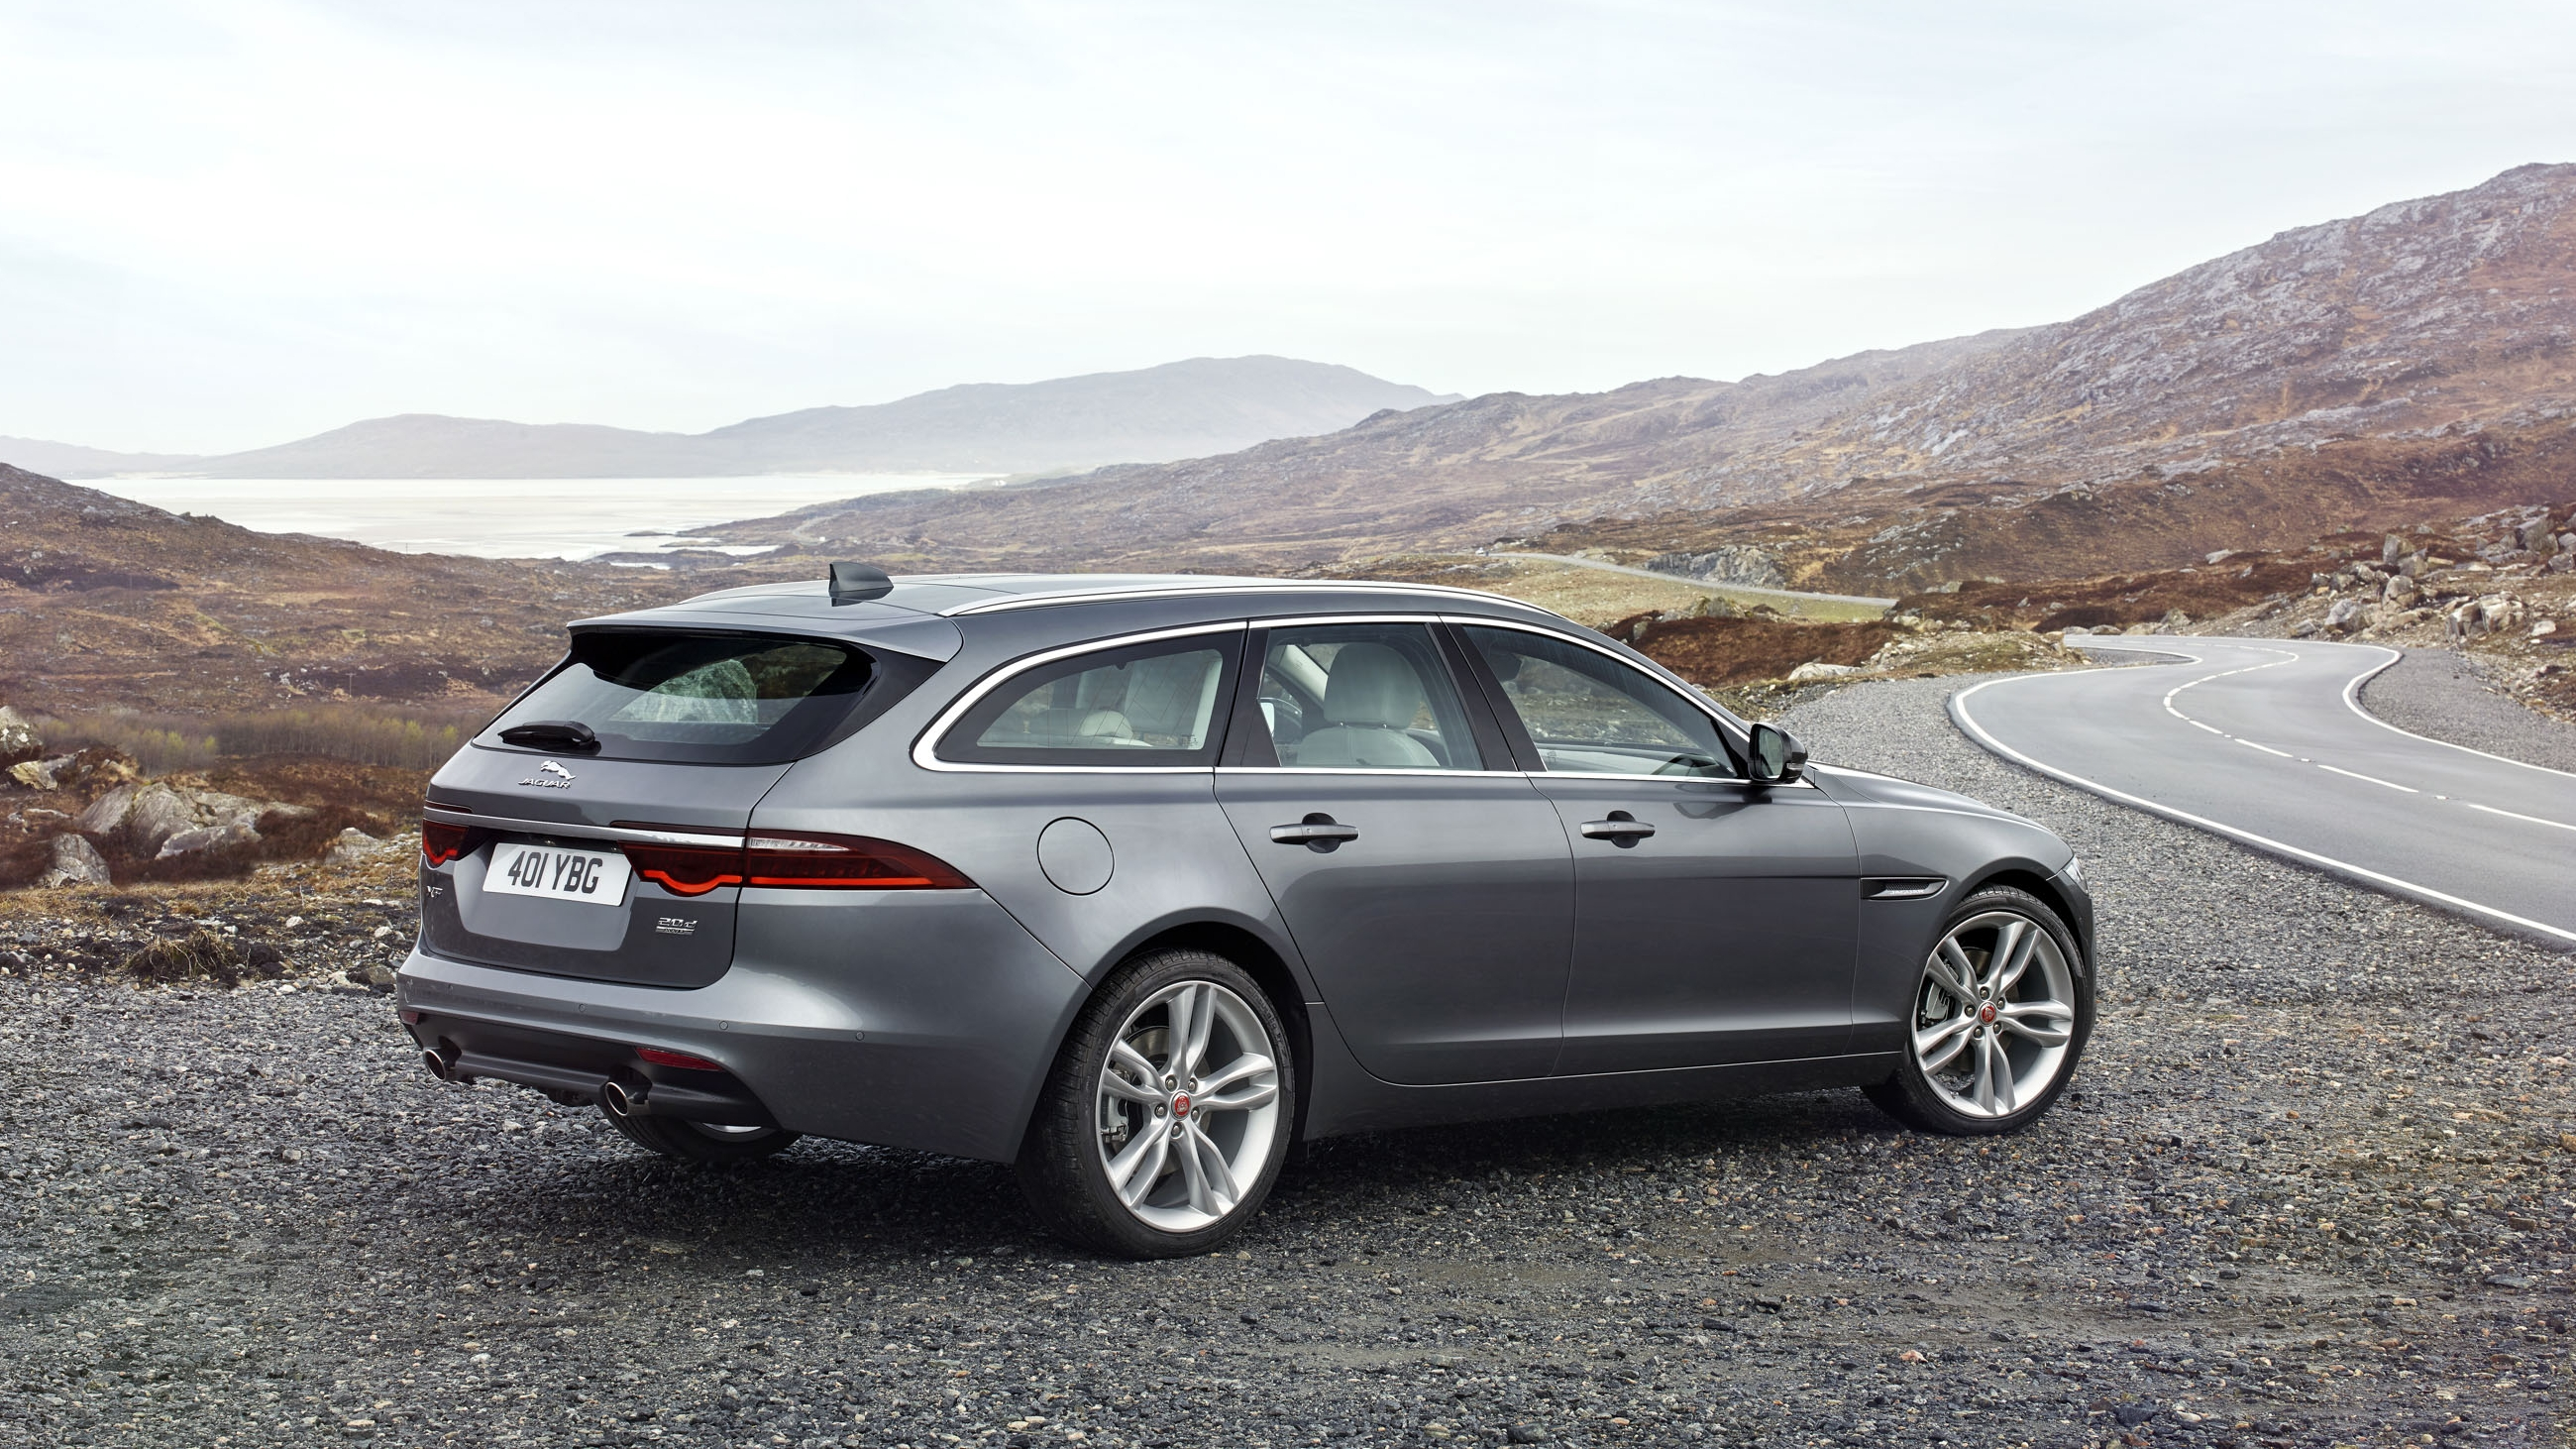 2018 jaguar s type. unique jaguar introduced in 2007 to replace the ageing stype jaguar xf was  redesigned for 2016 model year the makeover brought an evolutionary restyling but  intended 2018 jaguar s type